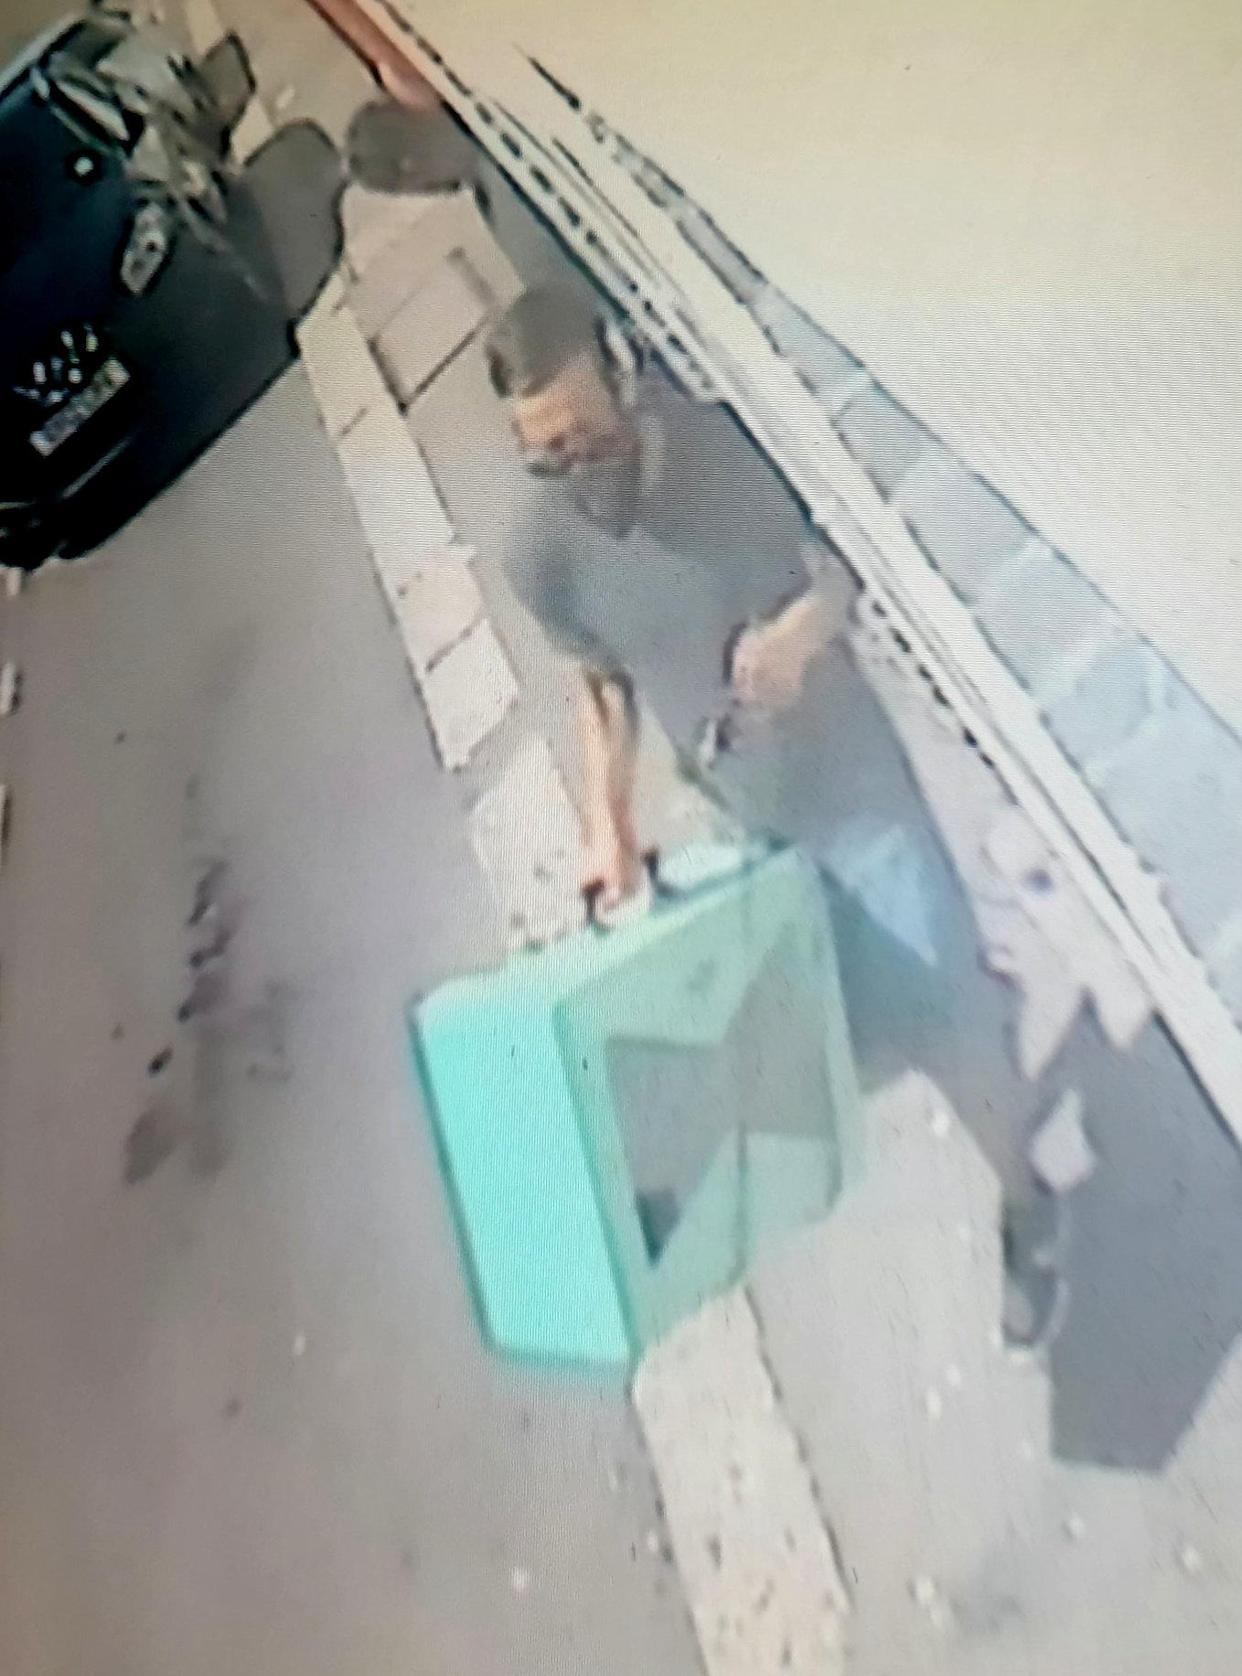 **EMBARGOED UNTIL 2PM BST / JULY 1, 2021**  CCTV of burglar in the pub and removing guitar and other goods to his car outside.  A brazen thief caught on camera stealing £5,000 worth of gear in Dover couldn't be nicked because he had left England by going through customs and was waiting for a ferry to France.  See SWNS story SWNNburglar.  The Italian committed the 'perfect crime' by raiding a pub and driving into a Channel ferry port - a few hundred yards away.  Once there, he couldn't be arrested - by Dover cops or the gendarme - despite being pointed out by the enraged victim.  He was deemed to be on French soil - while the burglary had been committed on British soil.  The bearded suspect, a 31 year old called Luca is understood to have arrived safely home in Italy.  Publican Jemima Burne, 29, was tipped off about the daylight raid by builders working at the Castle Inn.  He timed it to coincide with his hasty departure. He calmly strolled into the bar helping himself to a rare guitar, an amp and a variety of other goods.  He was caught on CCTV around 1pm on June 9 loading his swag into a dark blue Peugeot - and made off. But furious Jemima tracked him down - into the nearby terminal.